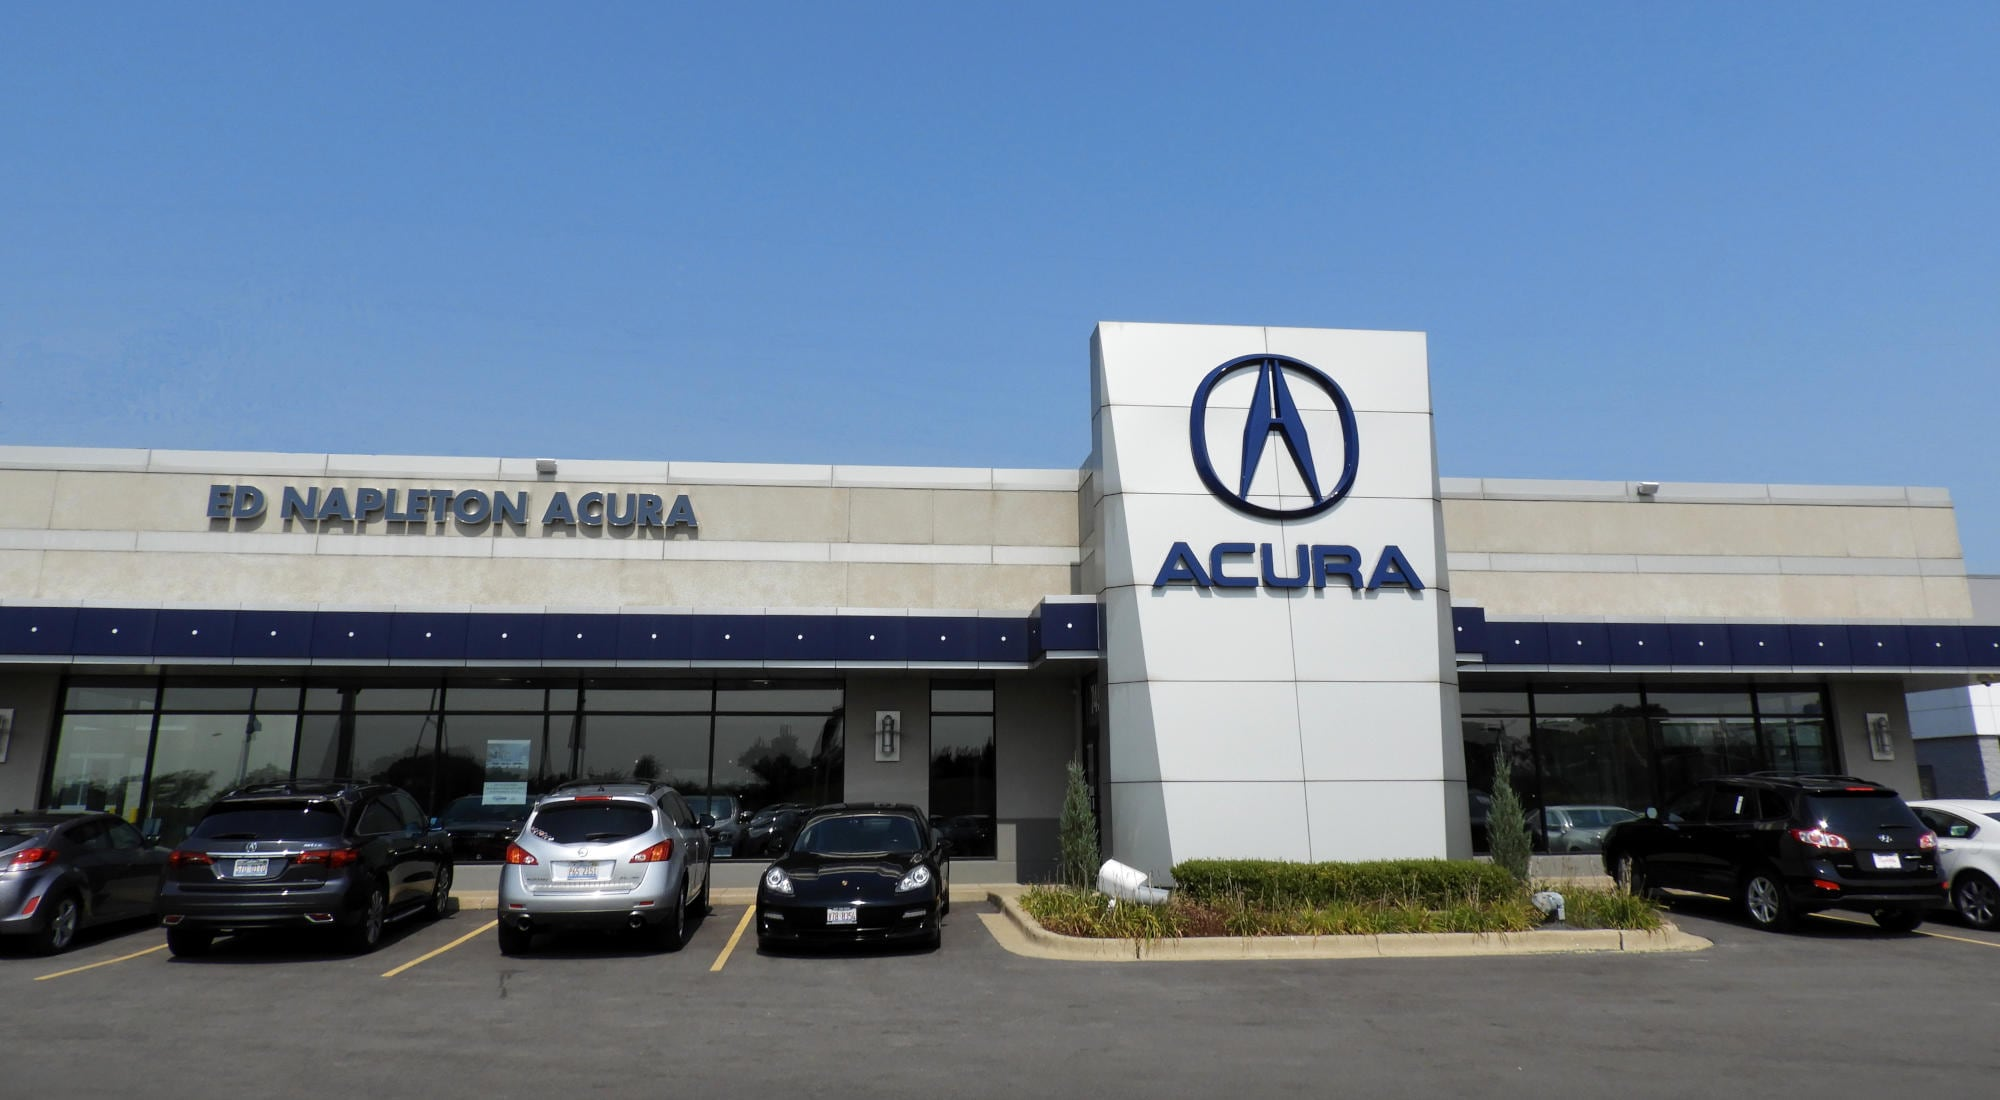 Ed Napleton Acura Dealership Elmhurst, Illinois